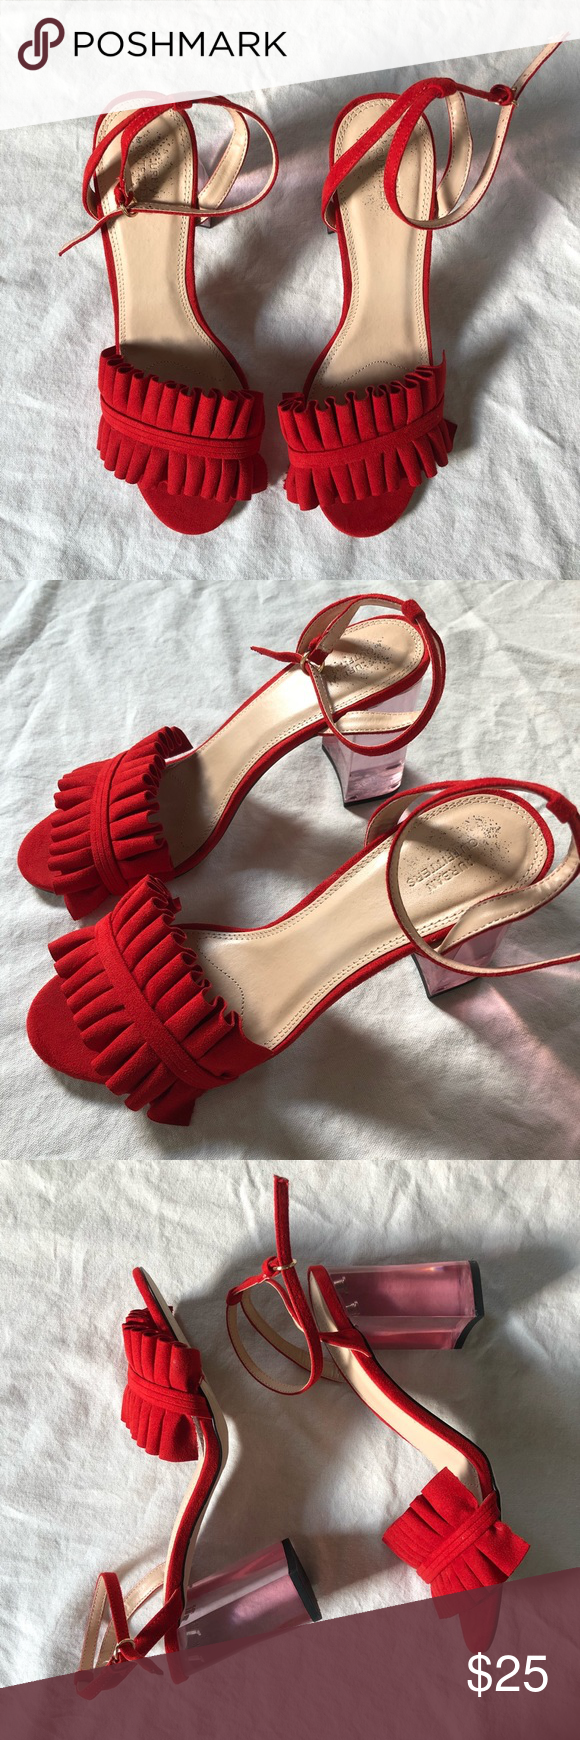 f461f68c0b4 UO Red Ruffled Heels Urban outfitters Rachel lucite red ornate shoe with  clear heel. Ruffled strap across toes with skinny adjustable ankle strap.